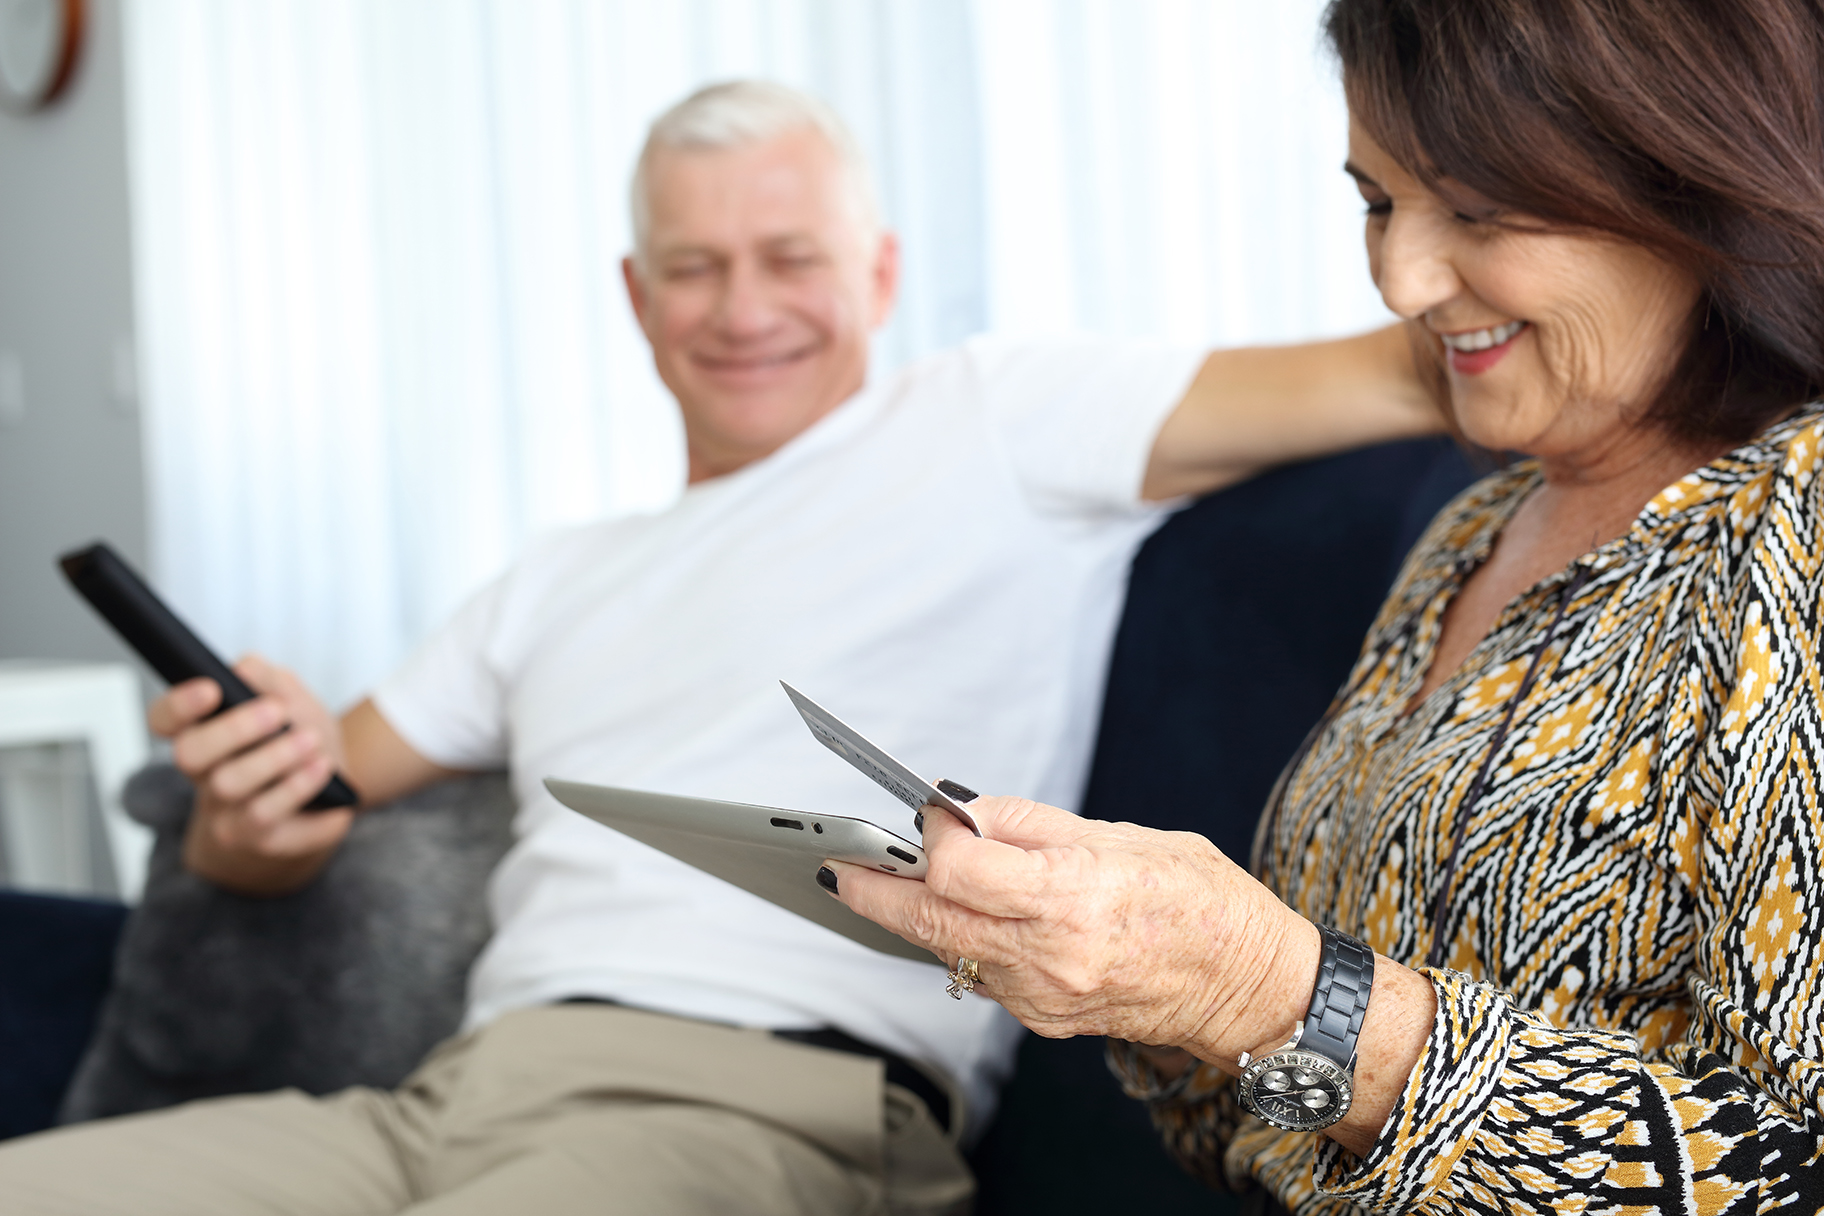 Man holding TV remote woman looking at tablet with credit card on couch